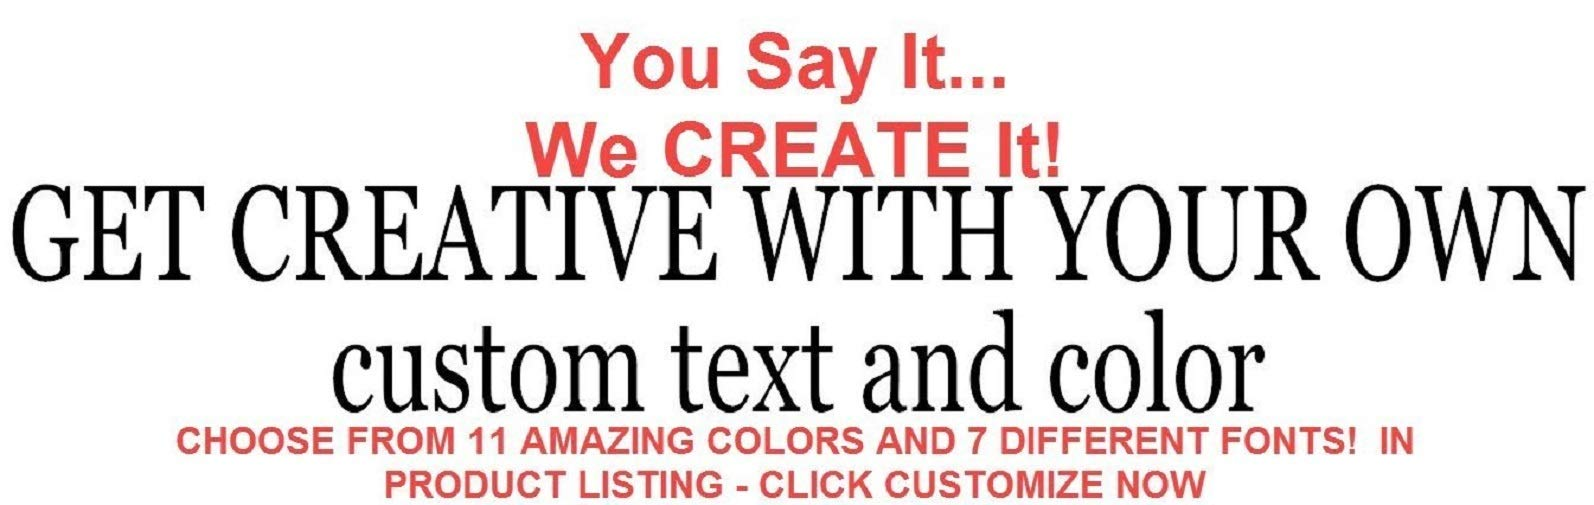 Custom Vinyl Decals - Personalized Decal - CREATE YOUR OWN Removable Personalized INSPIRATIONAL QUOTES Wall Decals - Made from High Quality Vinyl Material - 100% Satisfaction Guaranteed or Money Back!